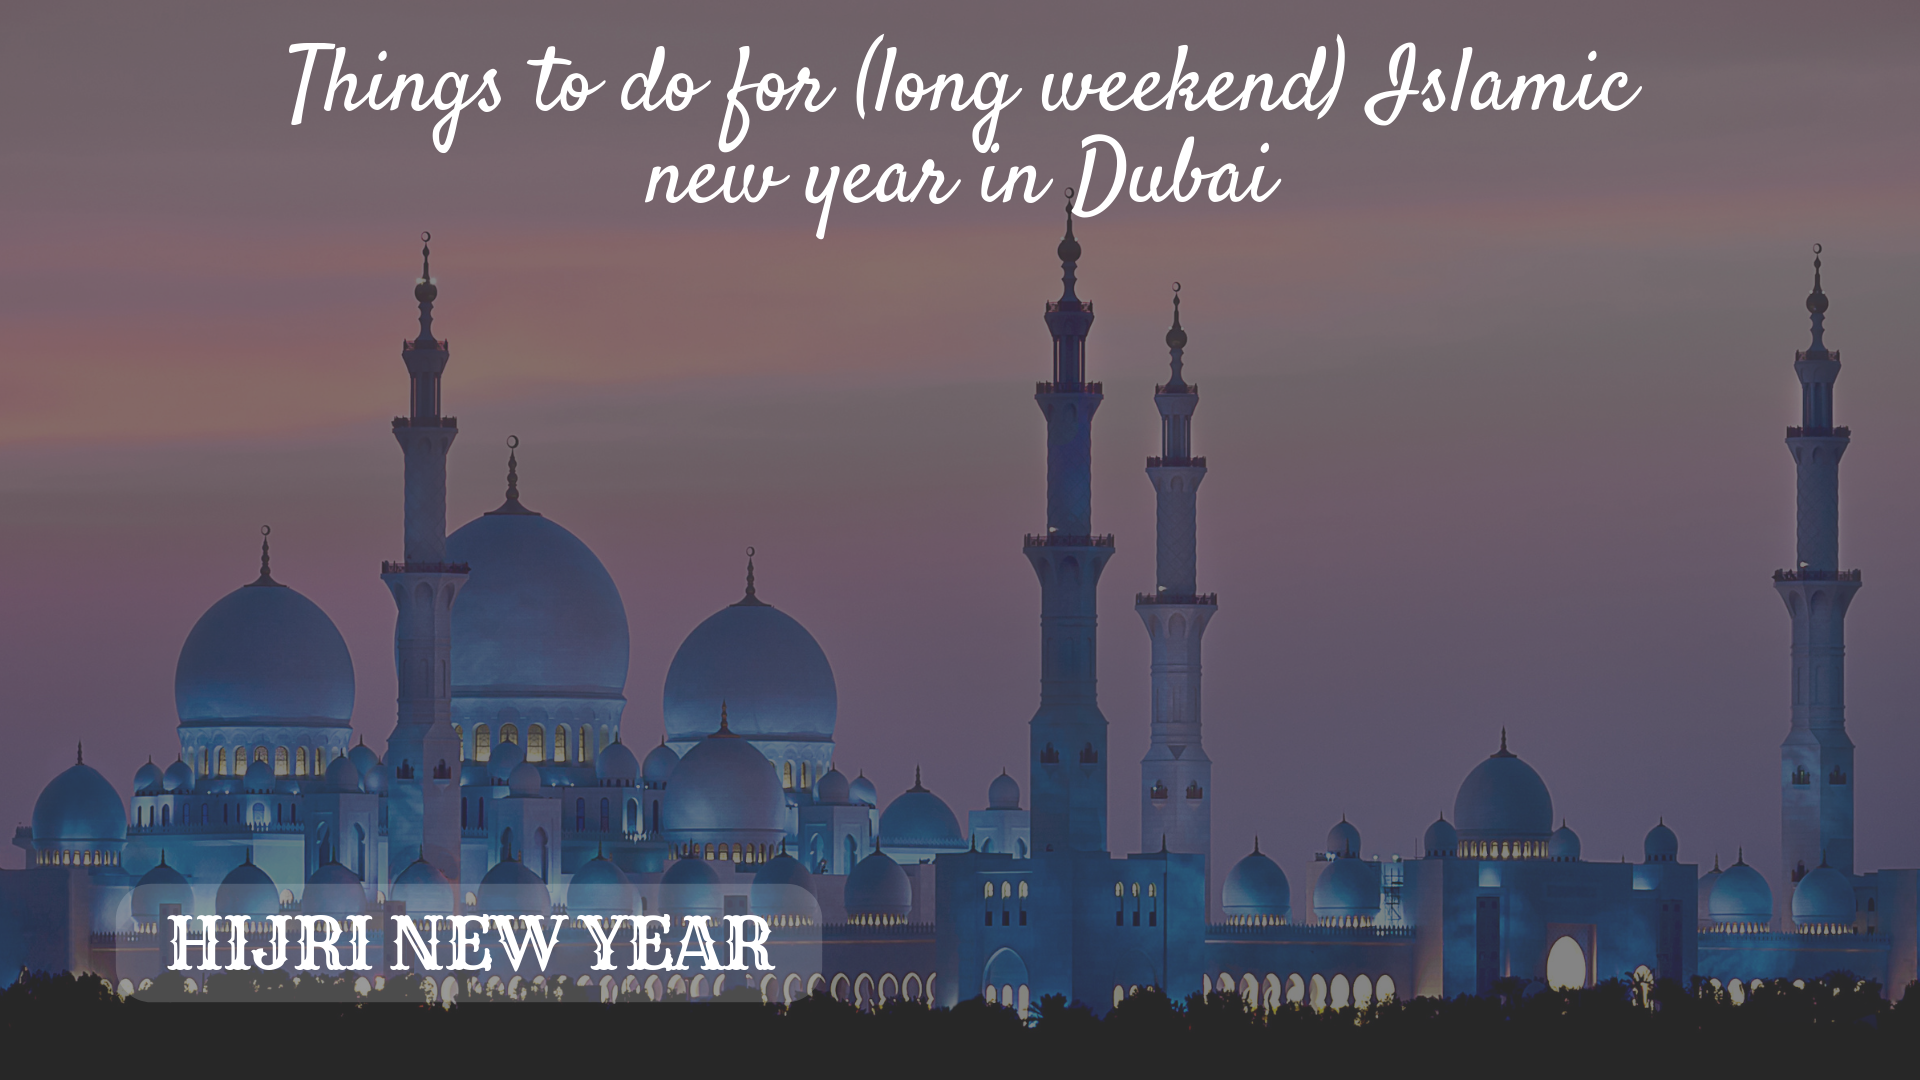 Things to do in Dubai for Islamic New Year long weekend